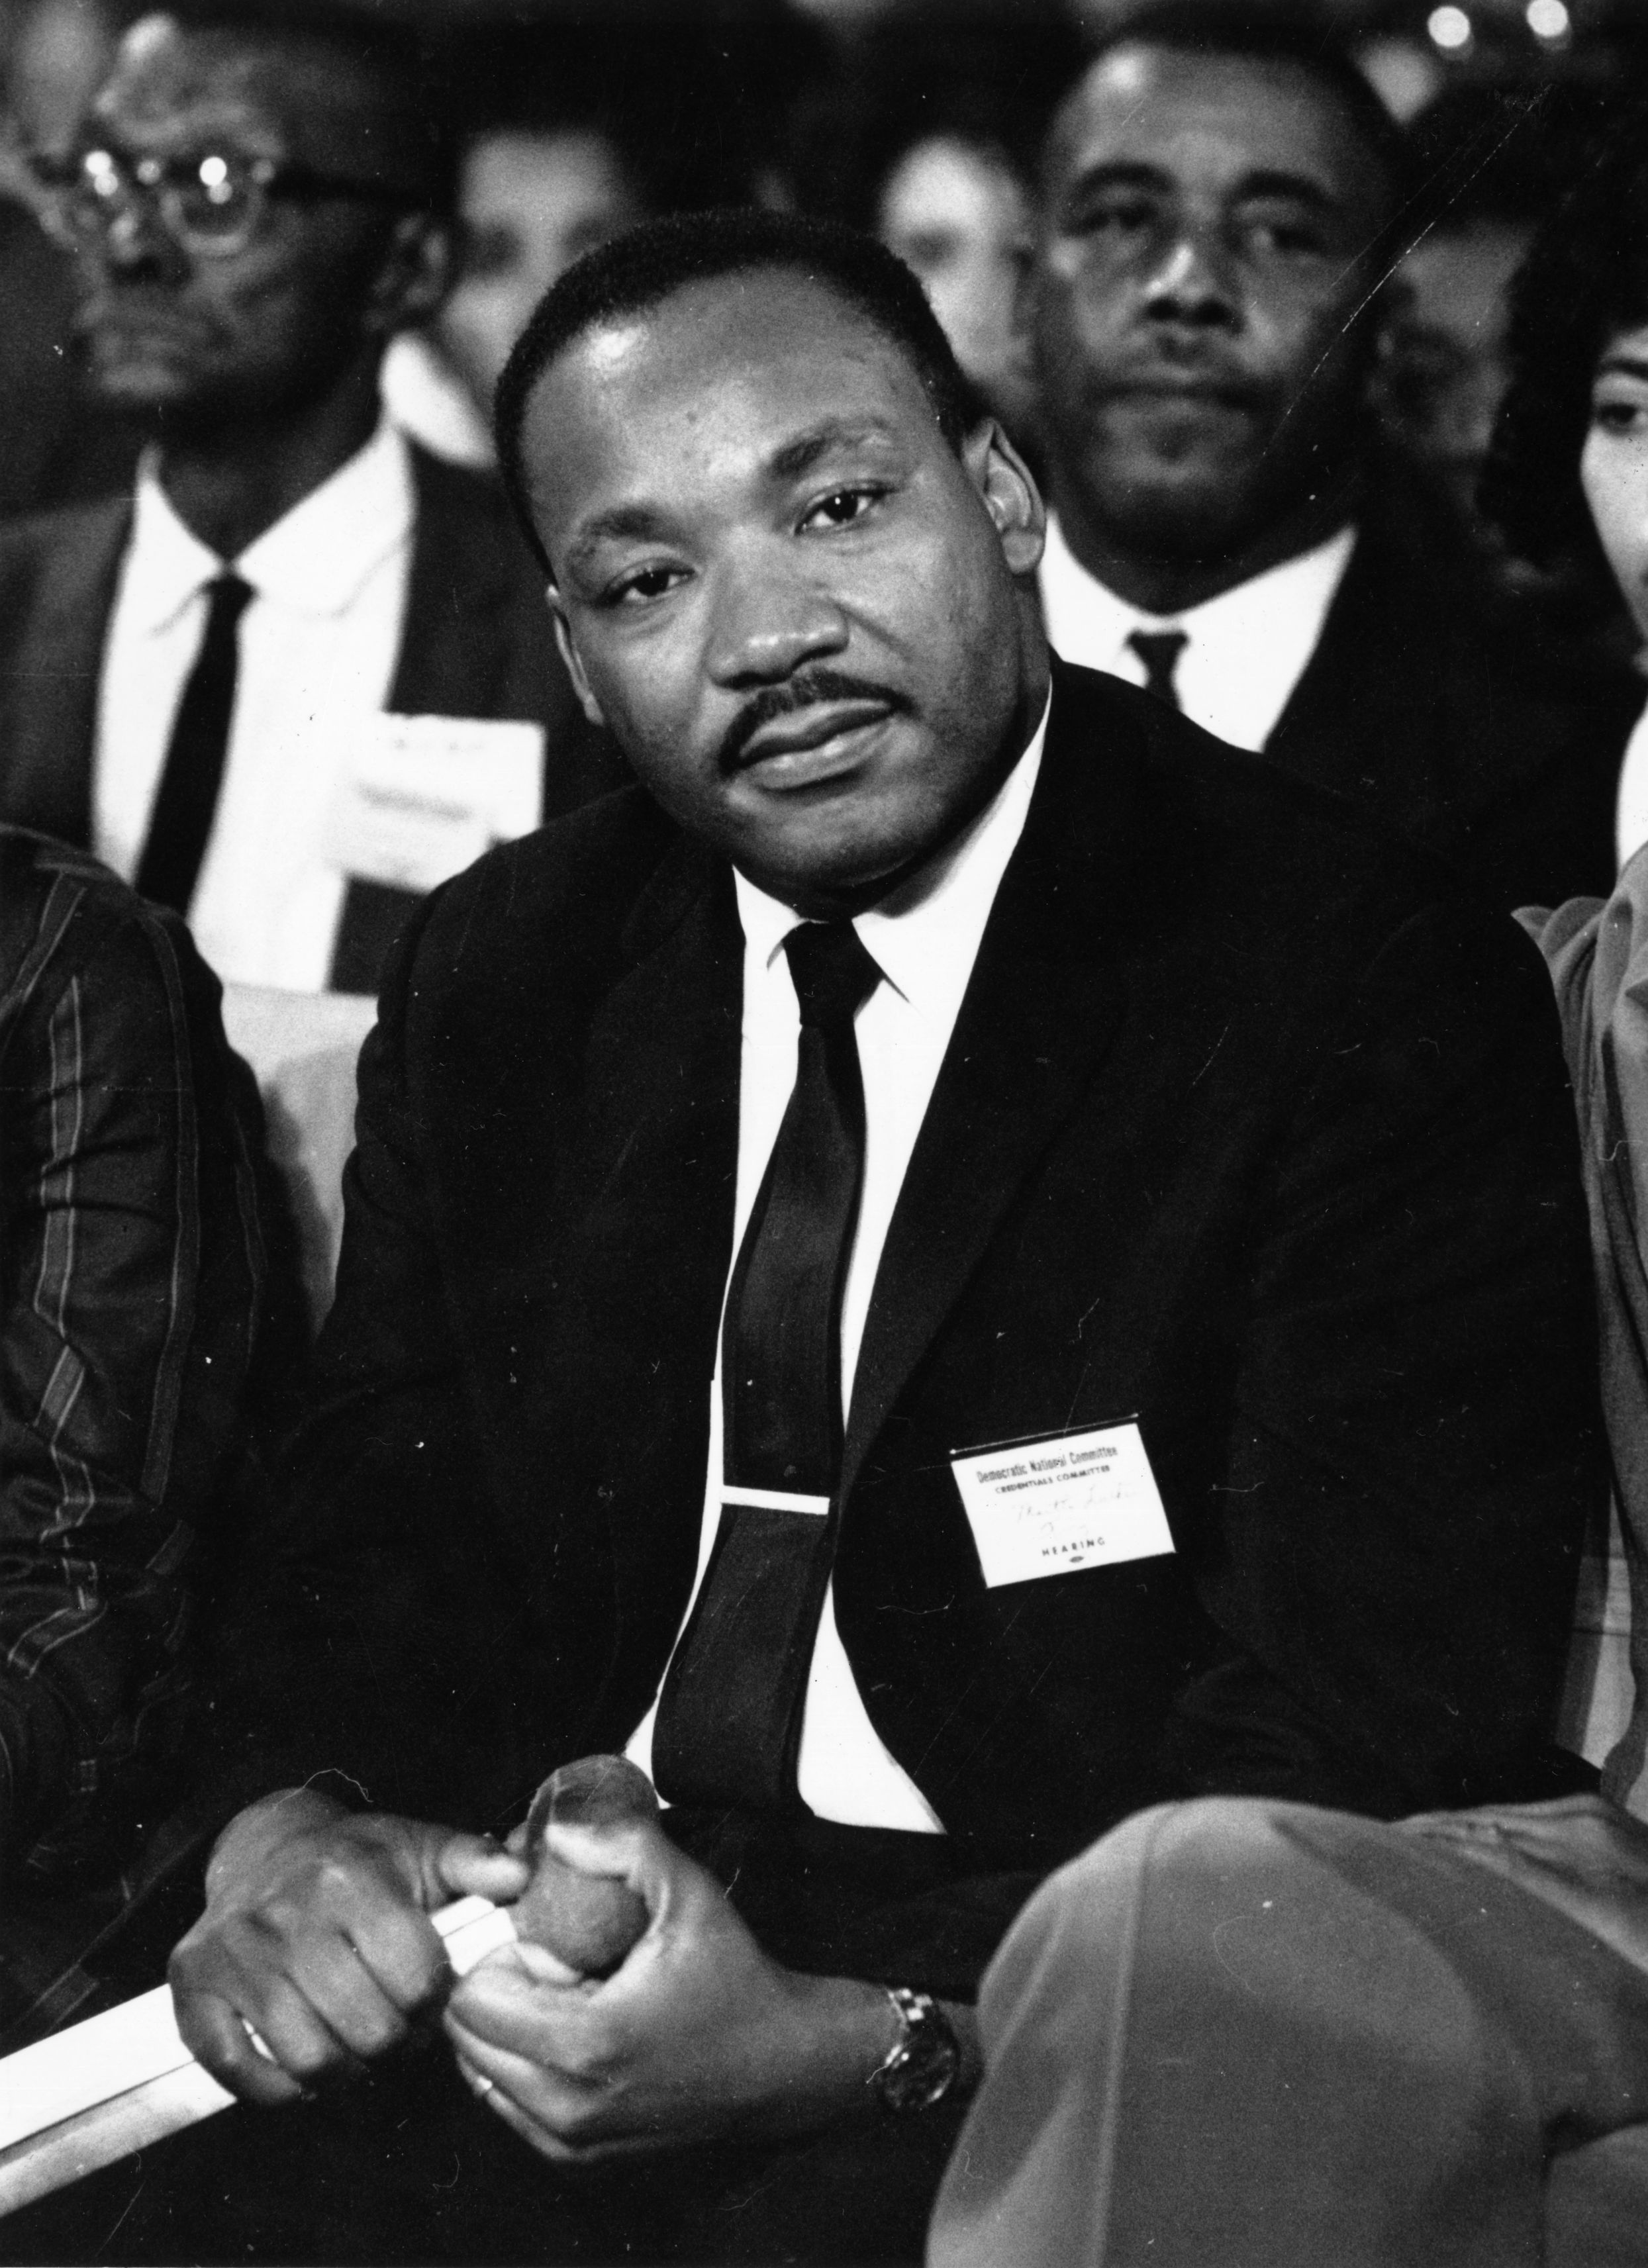 Dr. Martin Luther King Image Source: Getty Images.